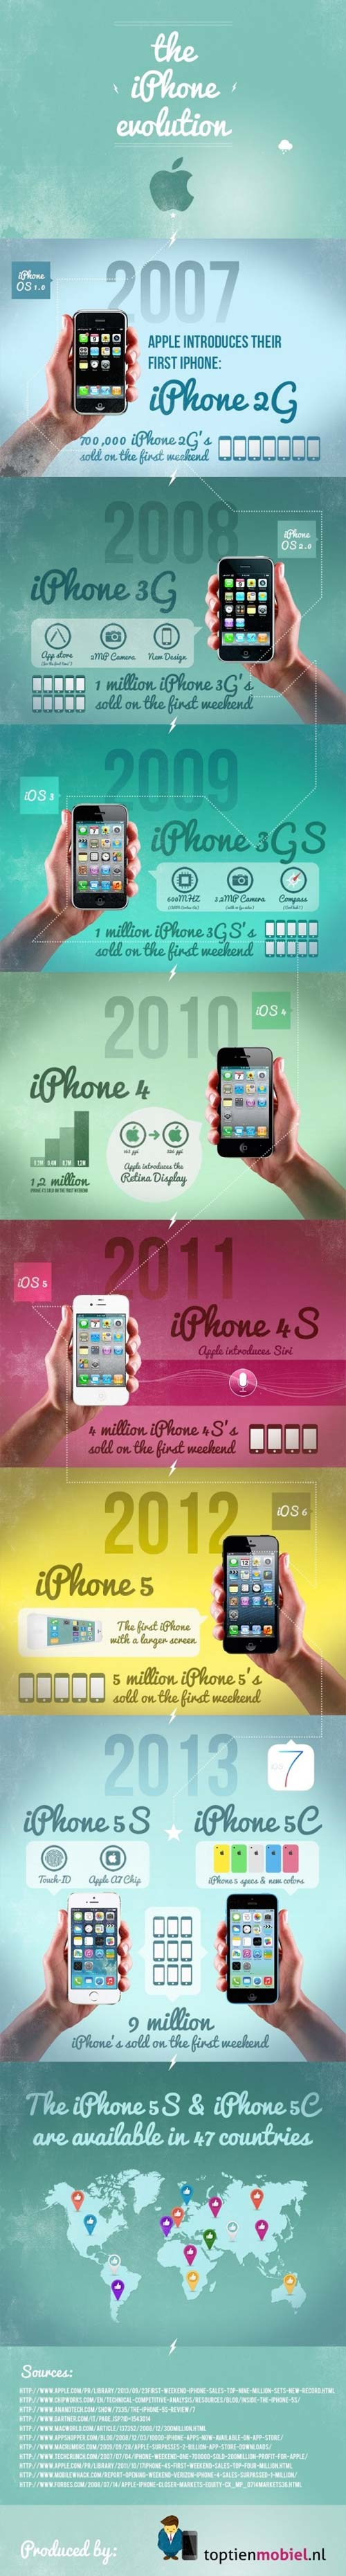 Apple iPhone infografica 2007 to 2013